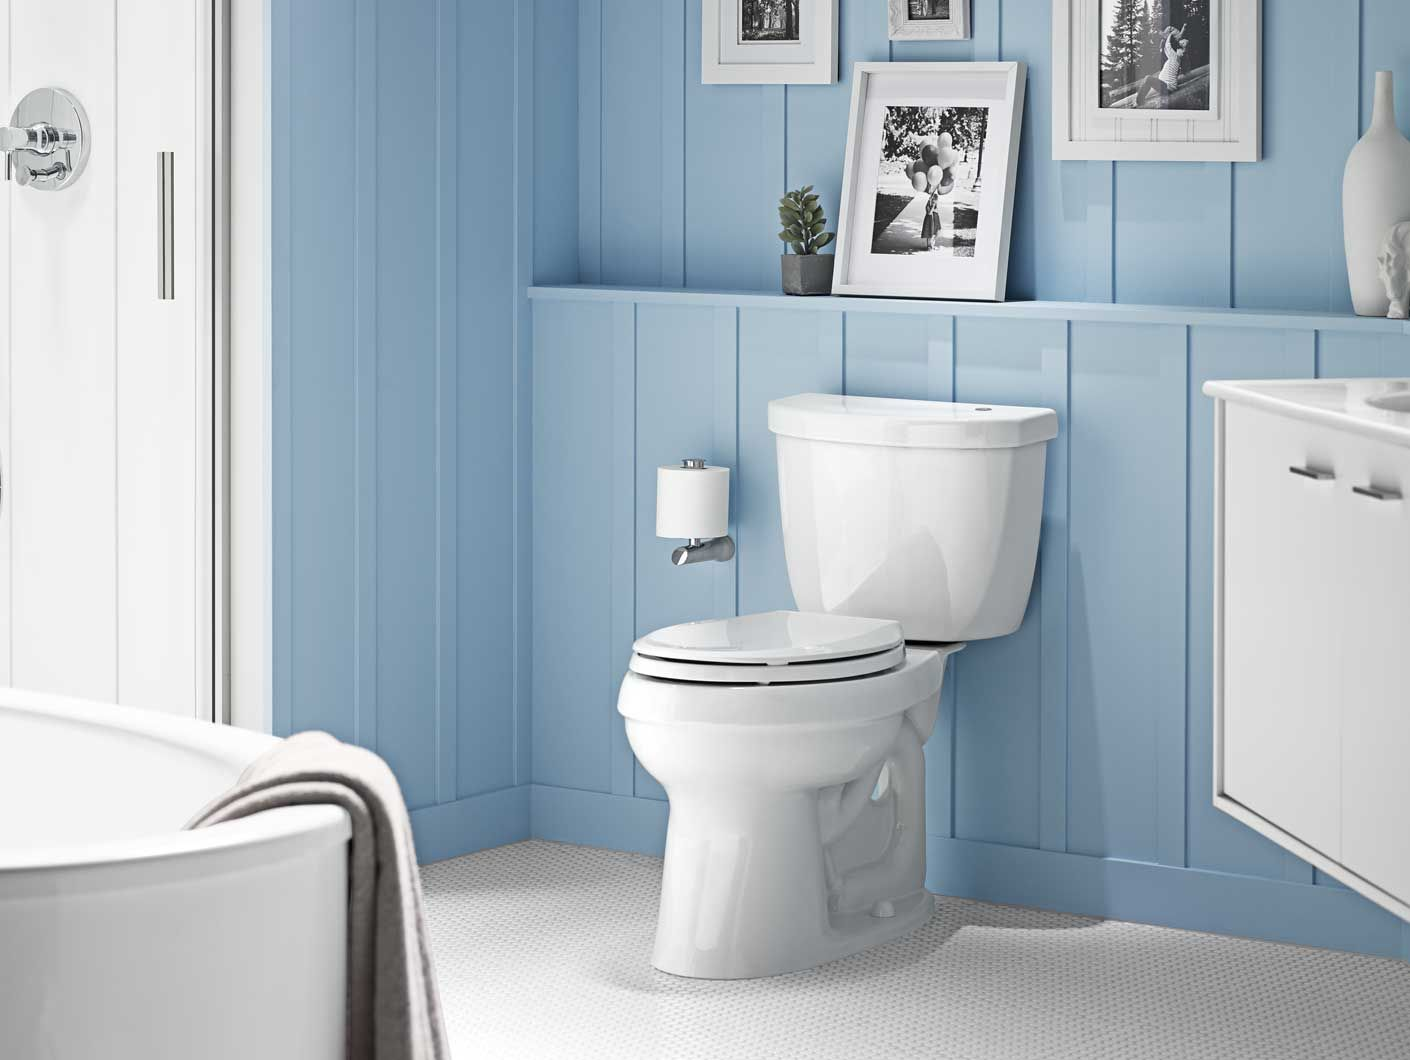 Kohler Touchless Toilets And Flush Kit The No Touch Flush For Your Home Bathroom Redecorating Beautiful Bathroom Designs Modern Toilet